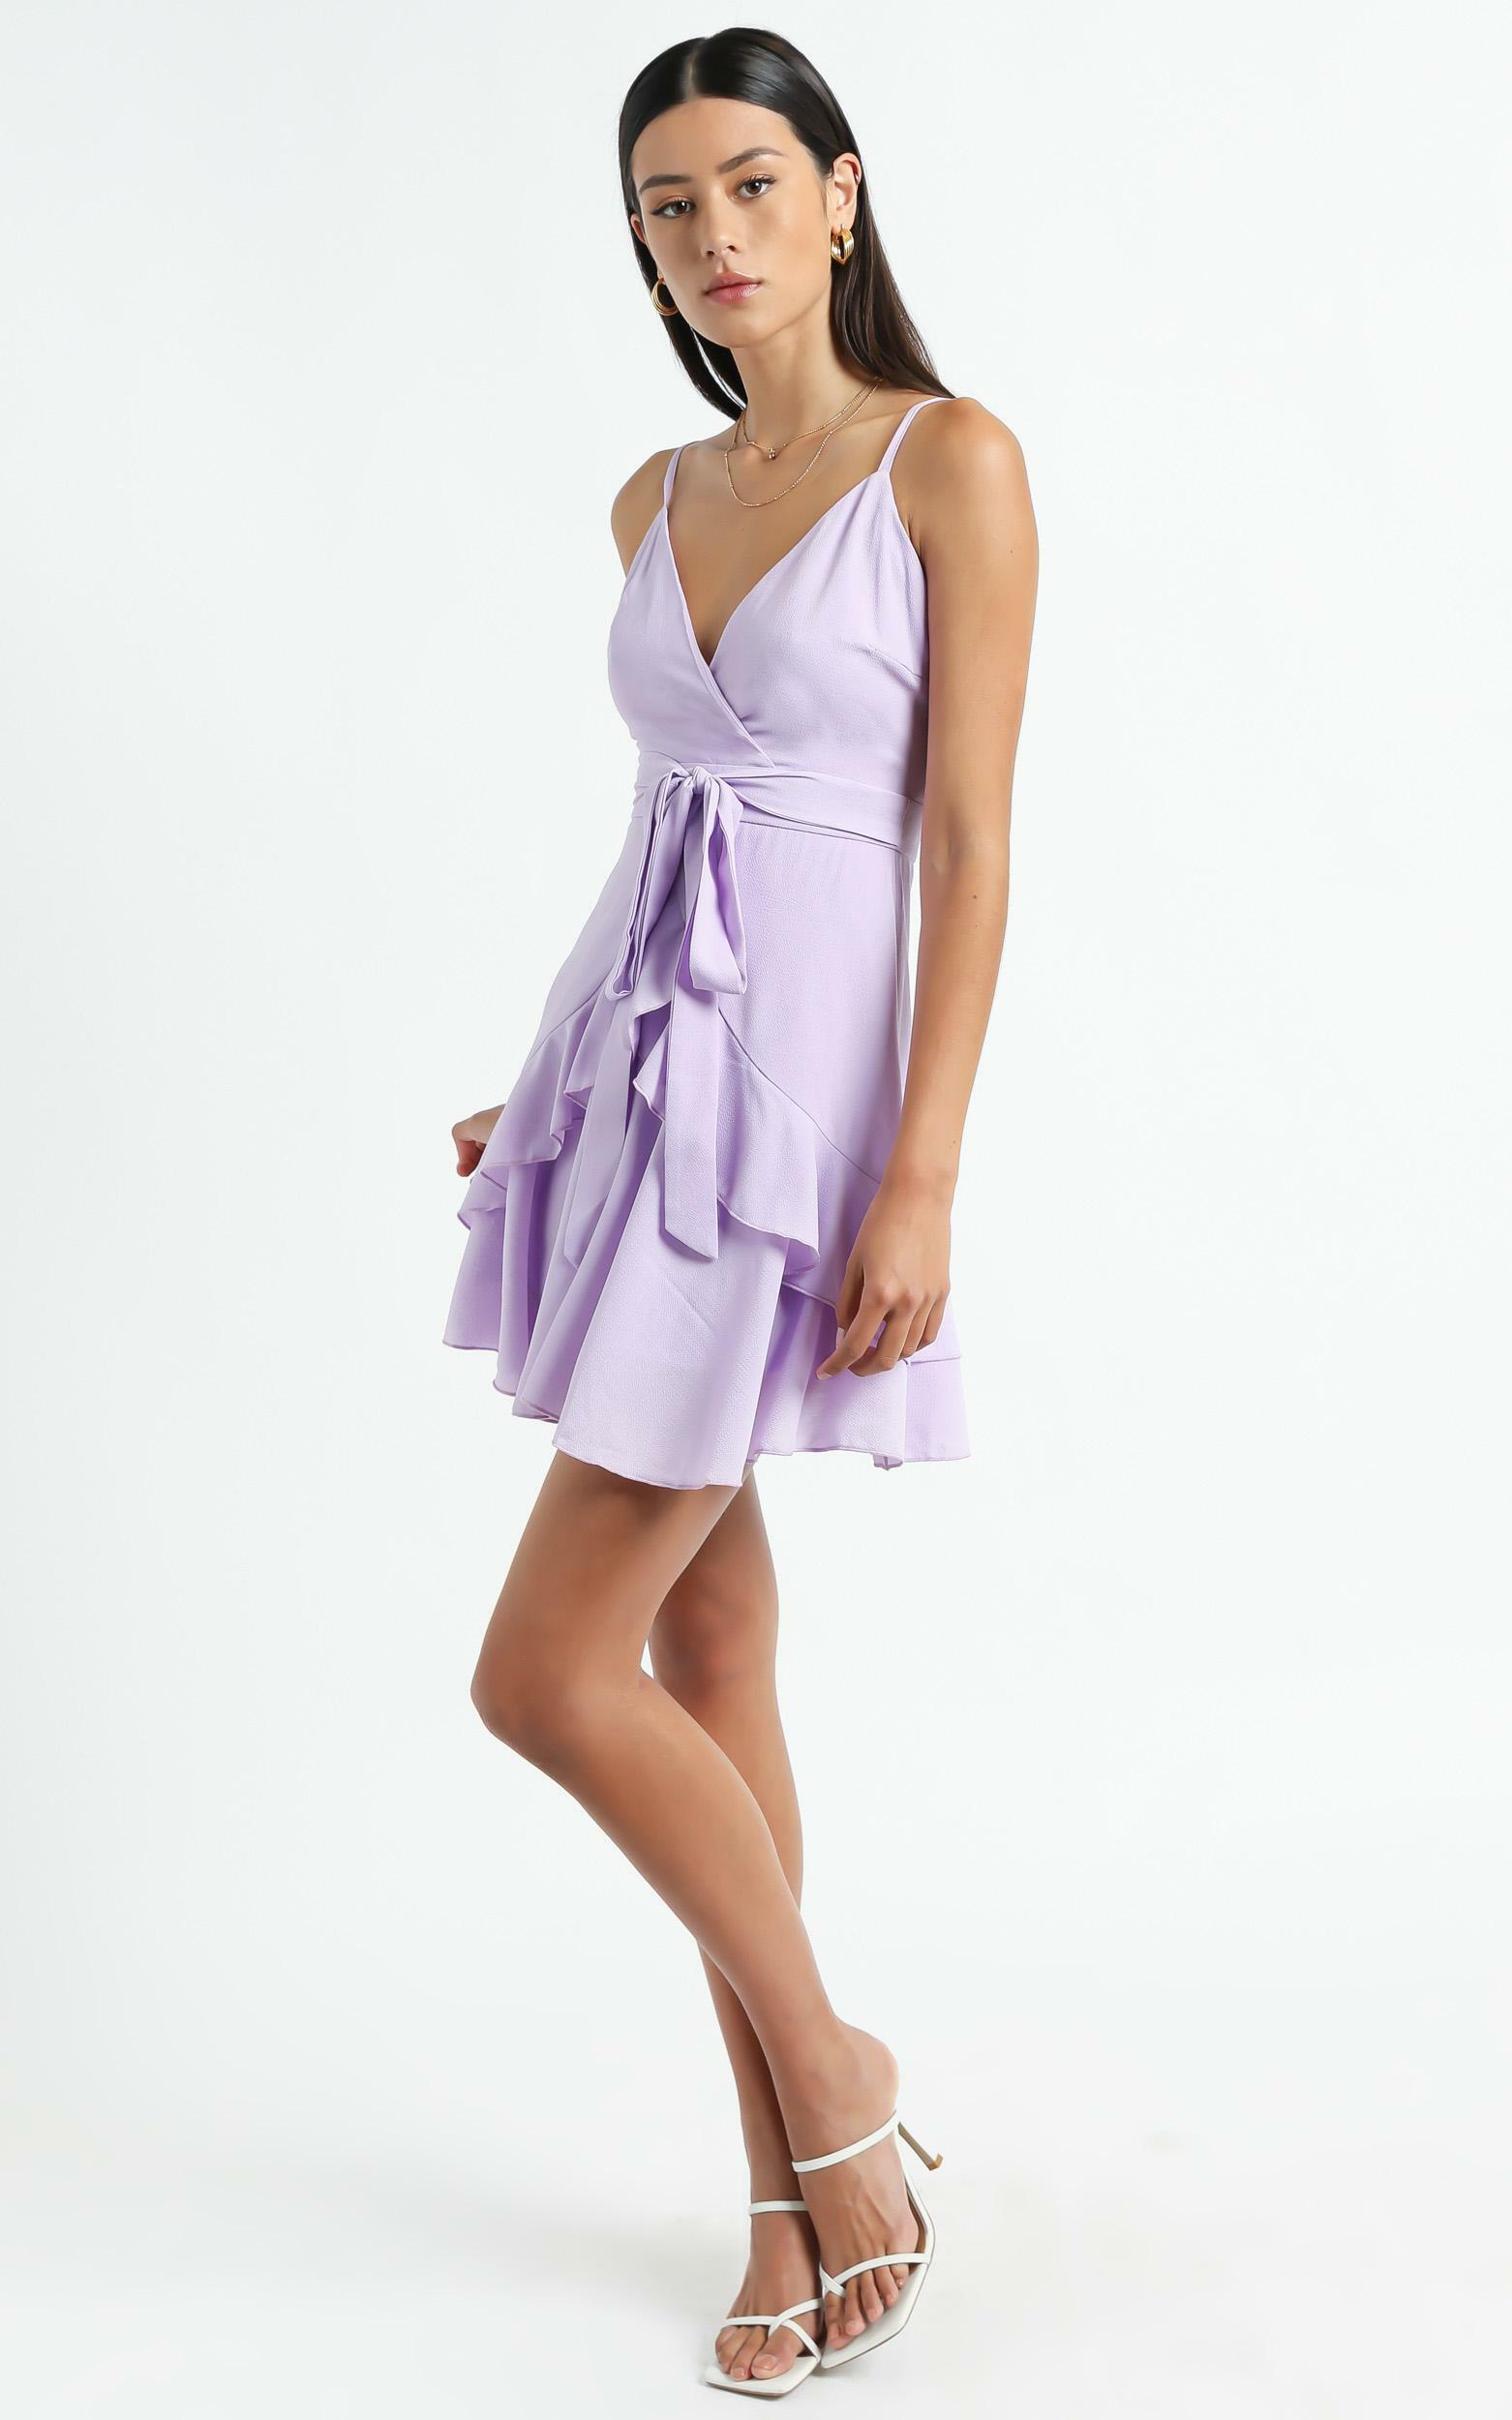 Feels Like Love Dress in Lilac - 6 (XS), PRP3, hi-res image number null